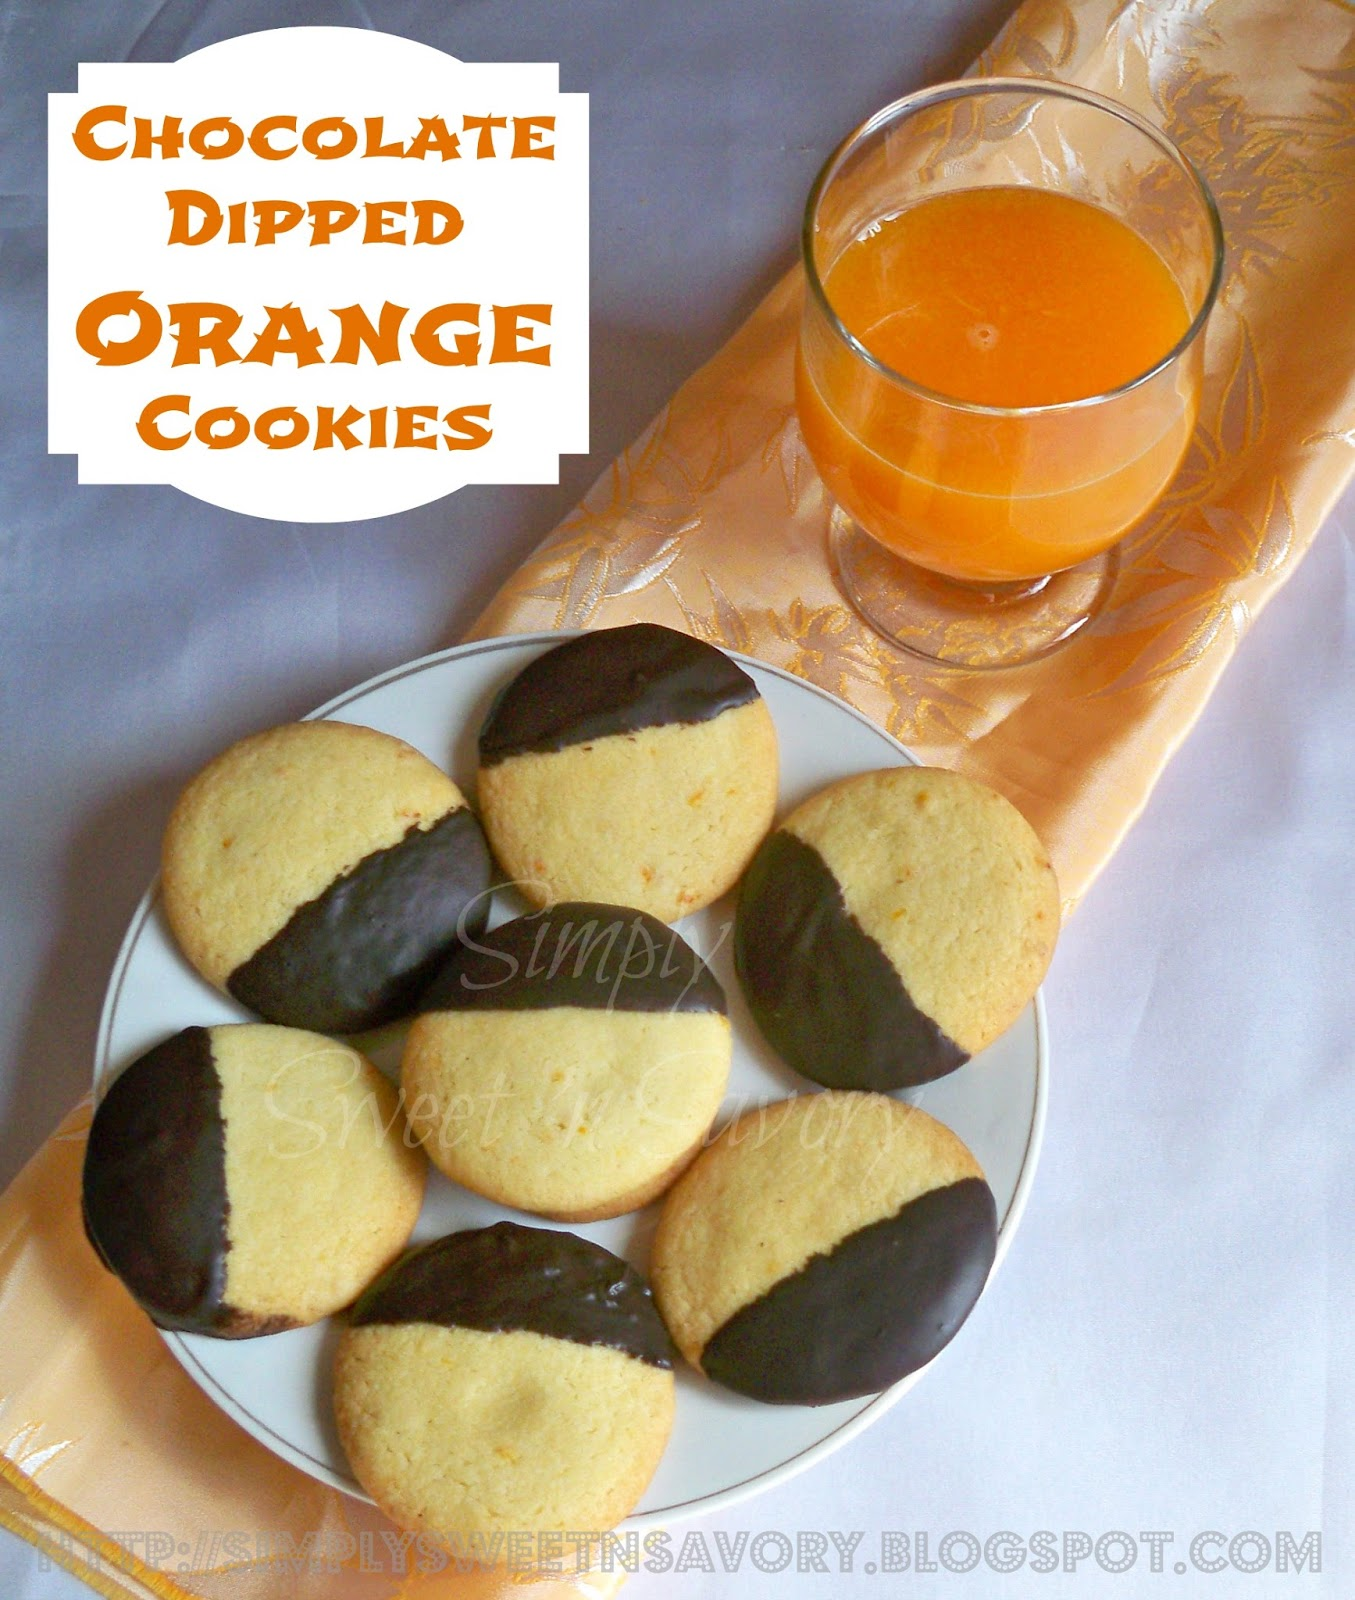 Simply Sweet 'n Savory: Chocolate Dipped Orange Cookies